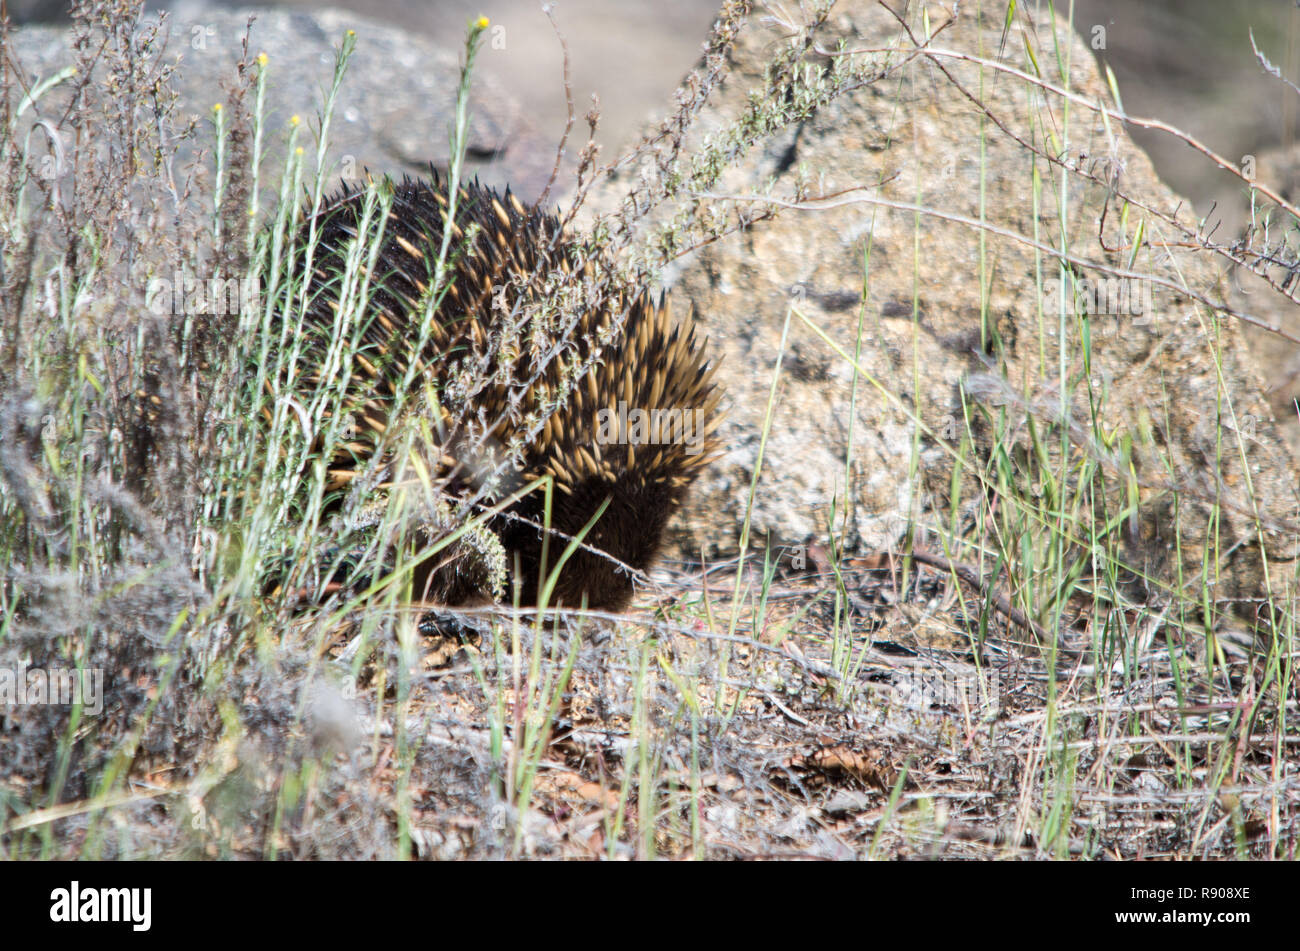 Echidna foraging in a grassy area on a sunny day Stock Photo